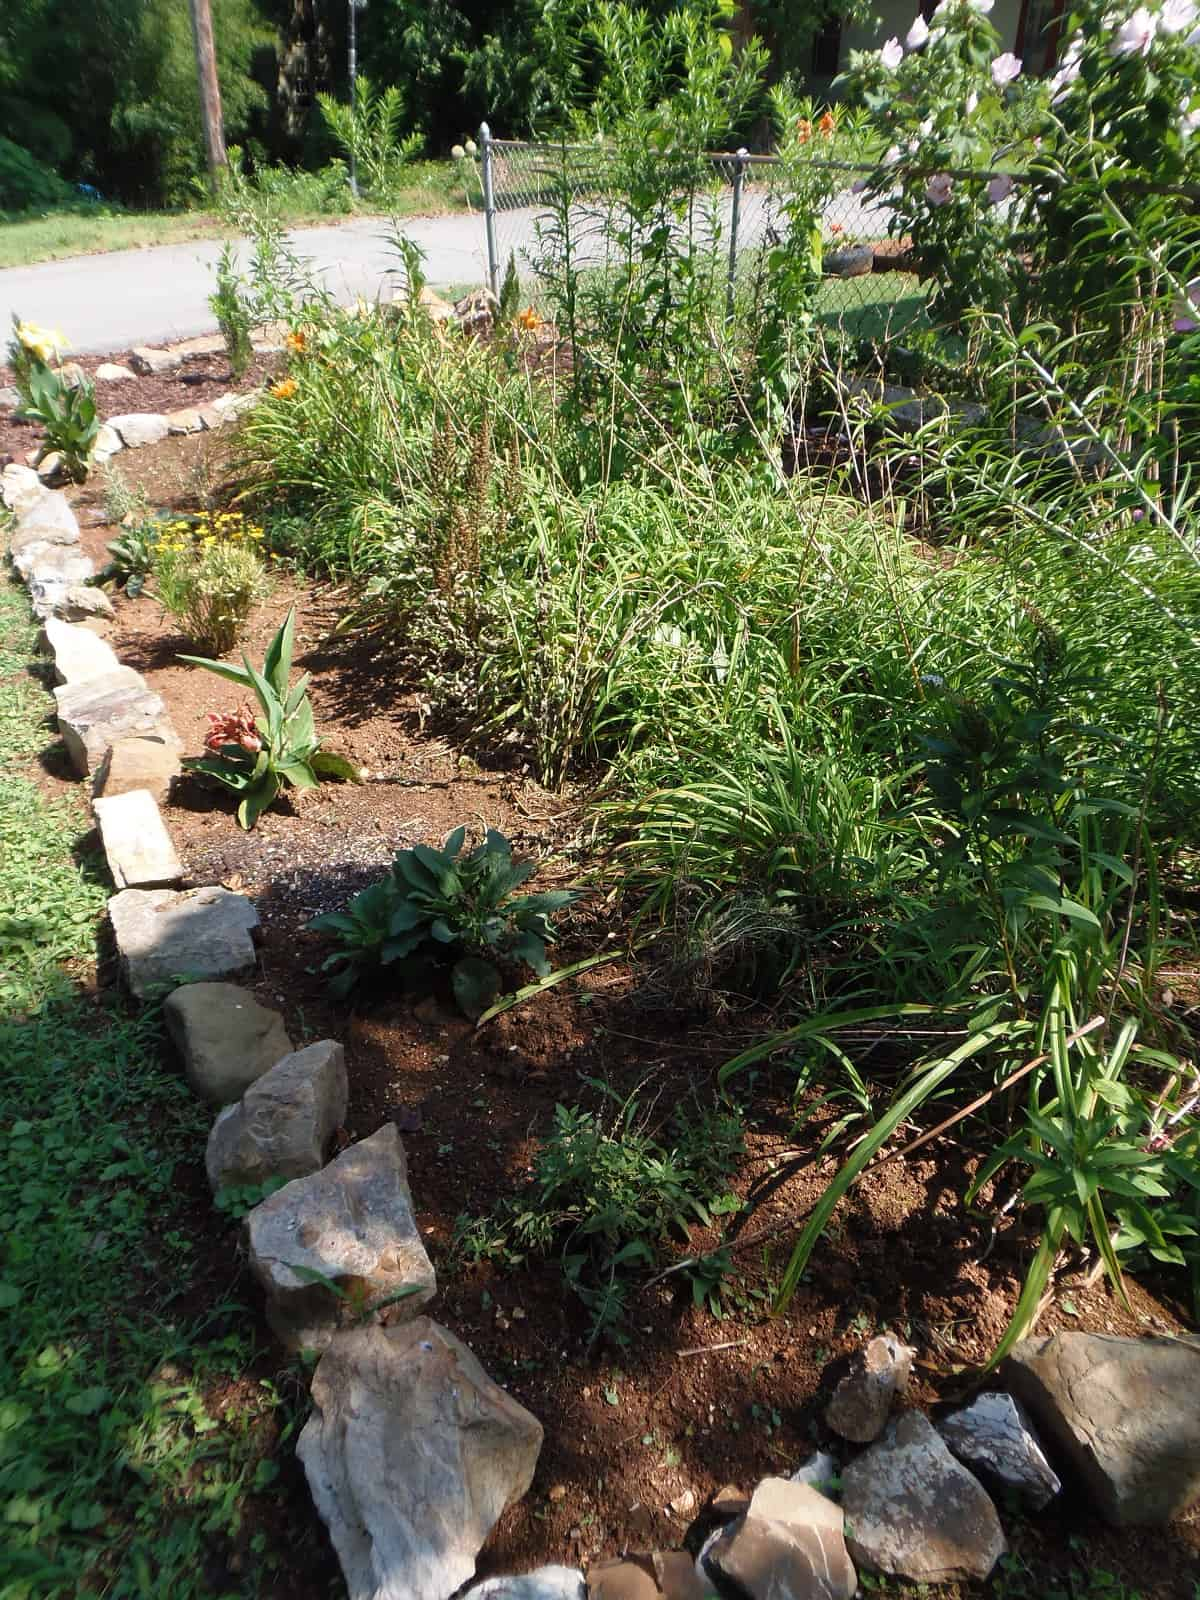 New Plants in Rock-Edged Garden